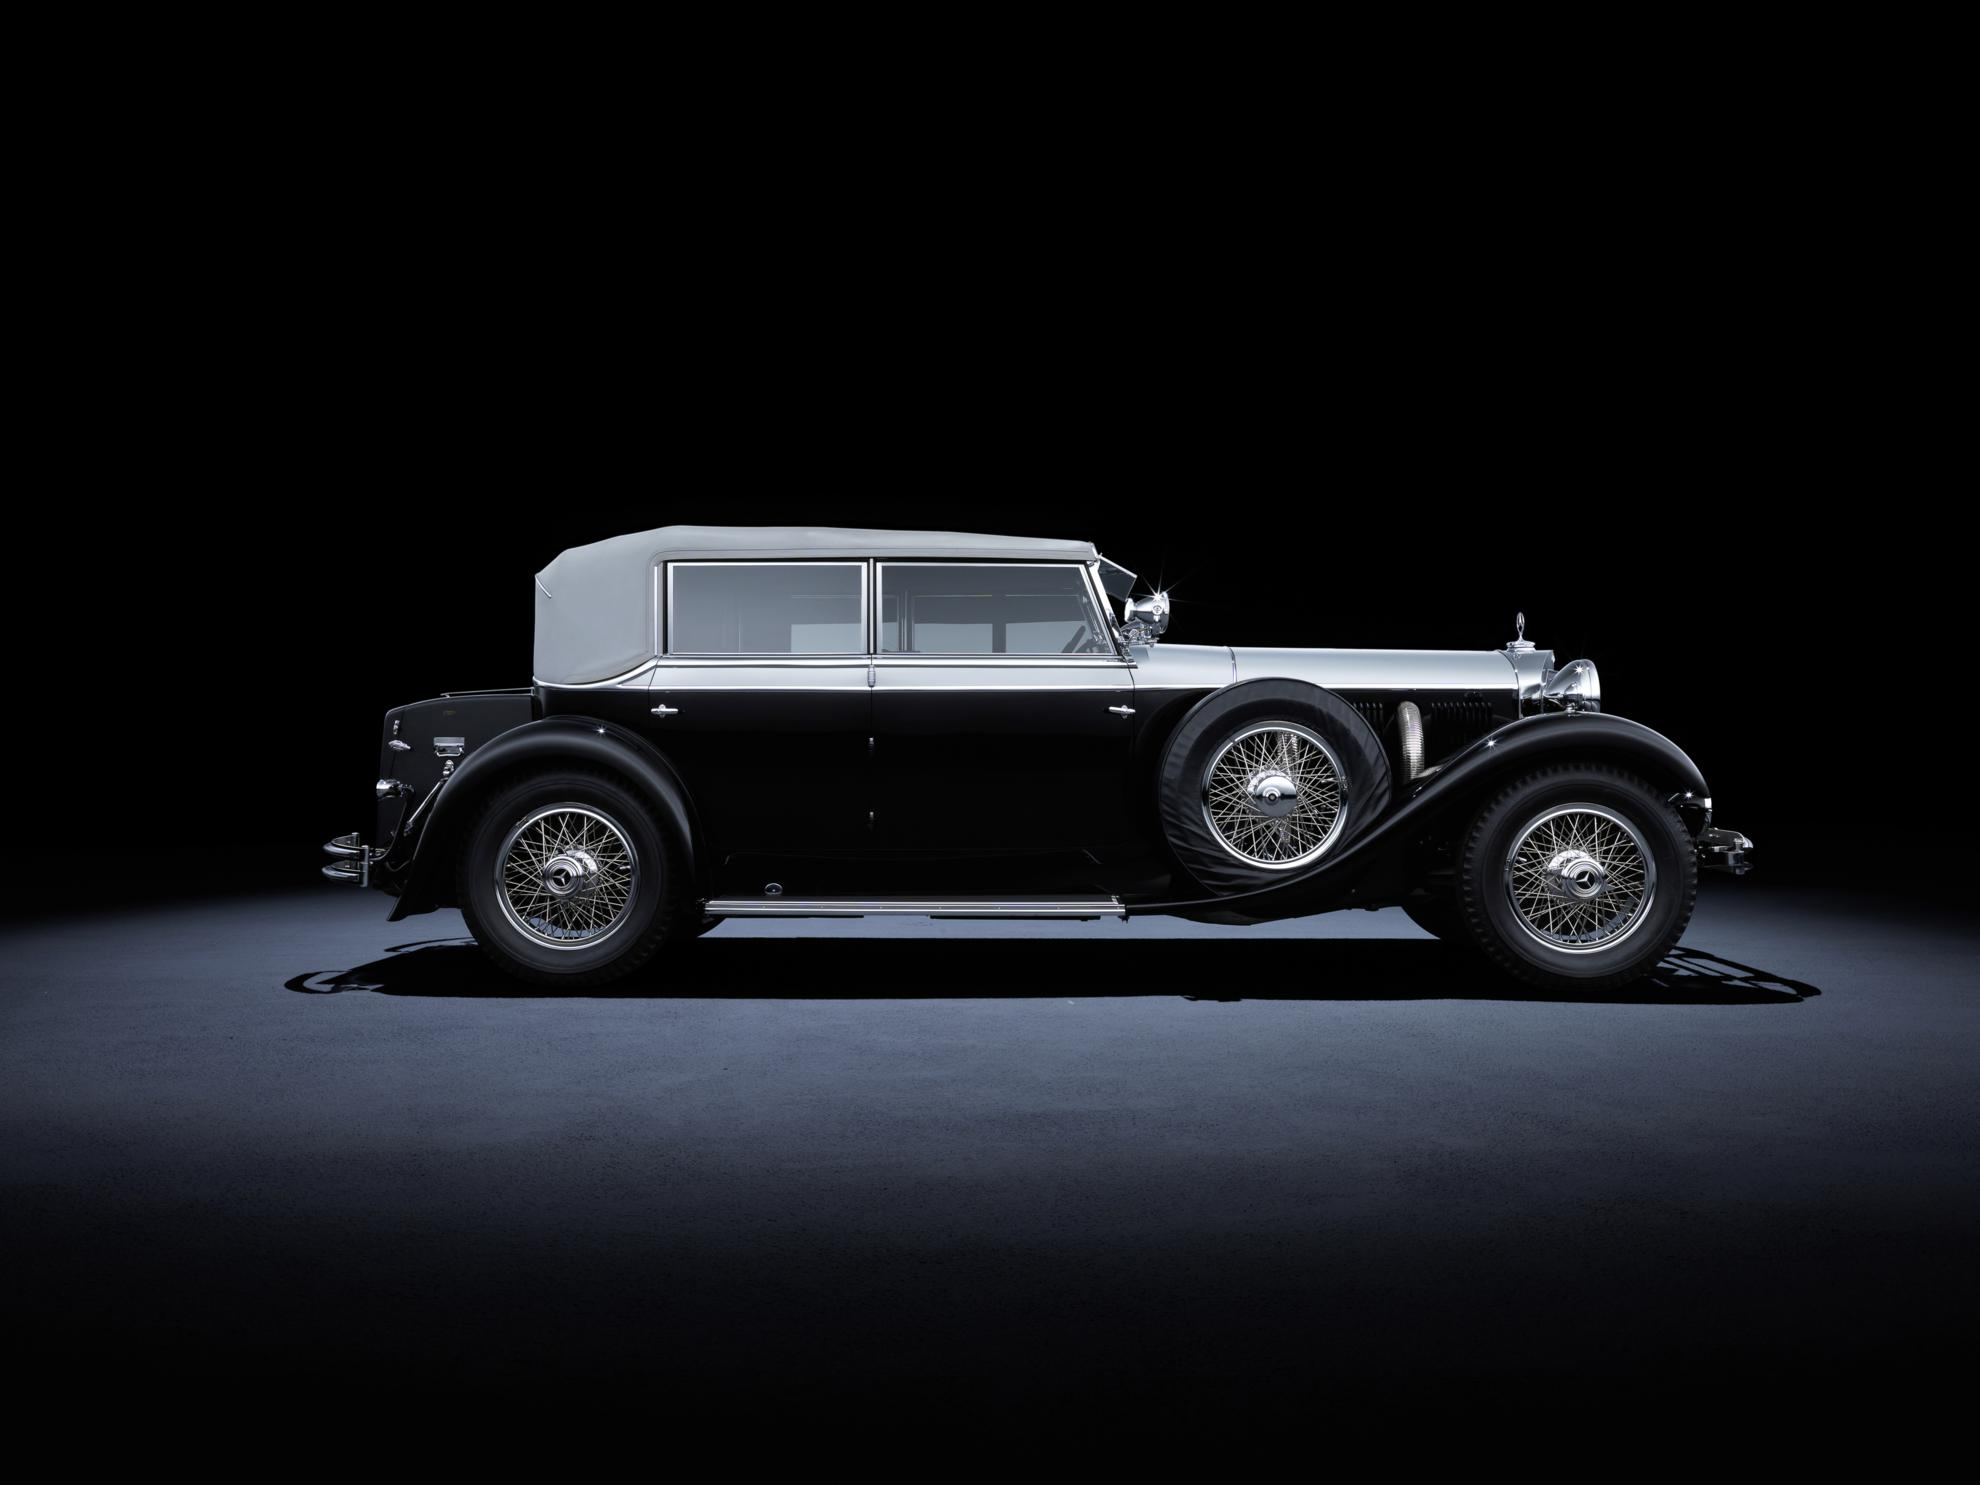 Mercedes benz heritage the highlights of the s class and for Mercedes benz car